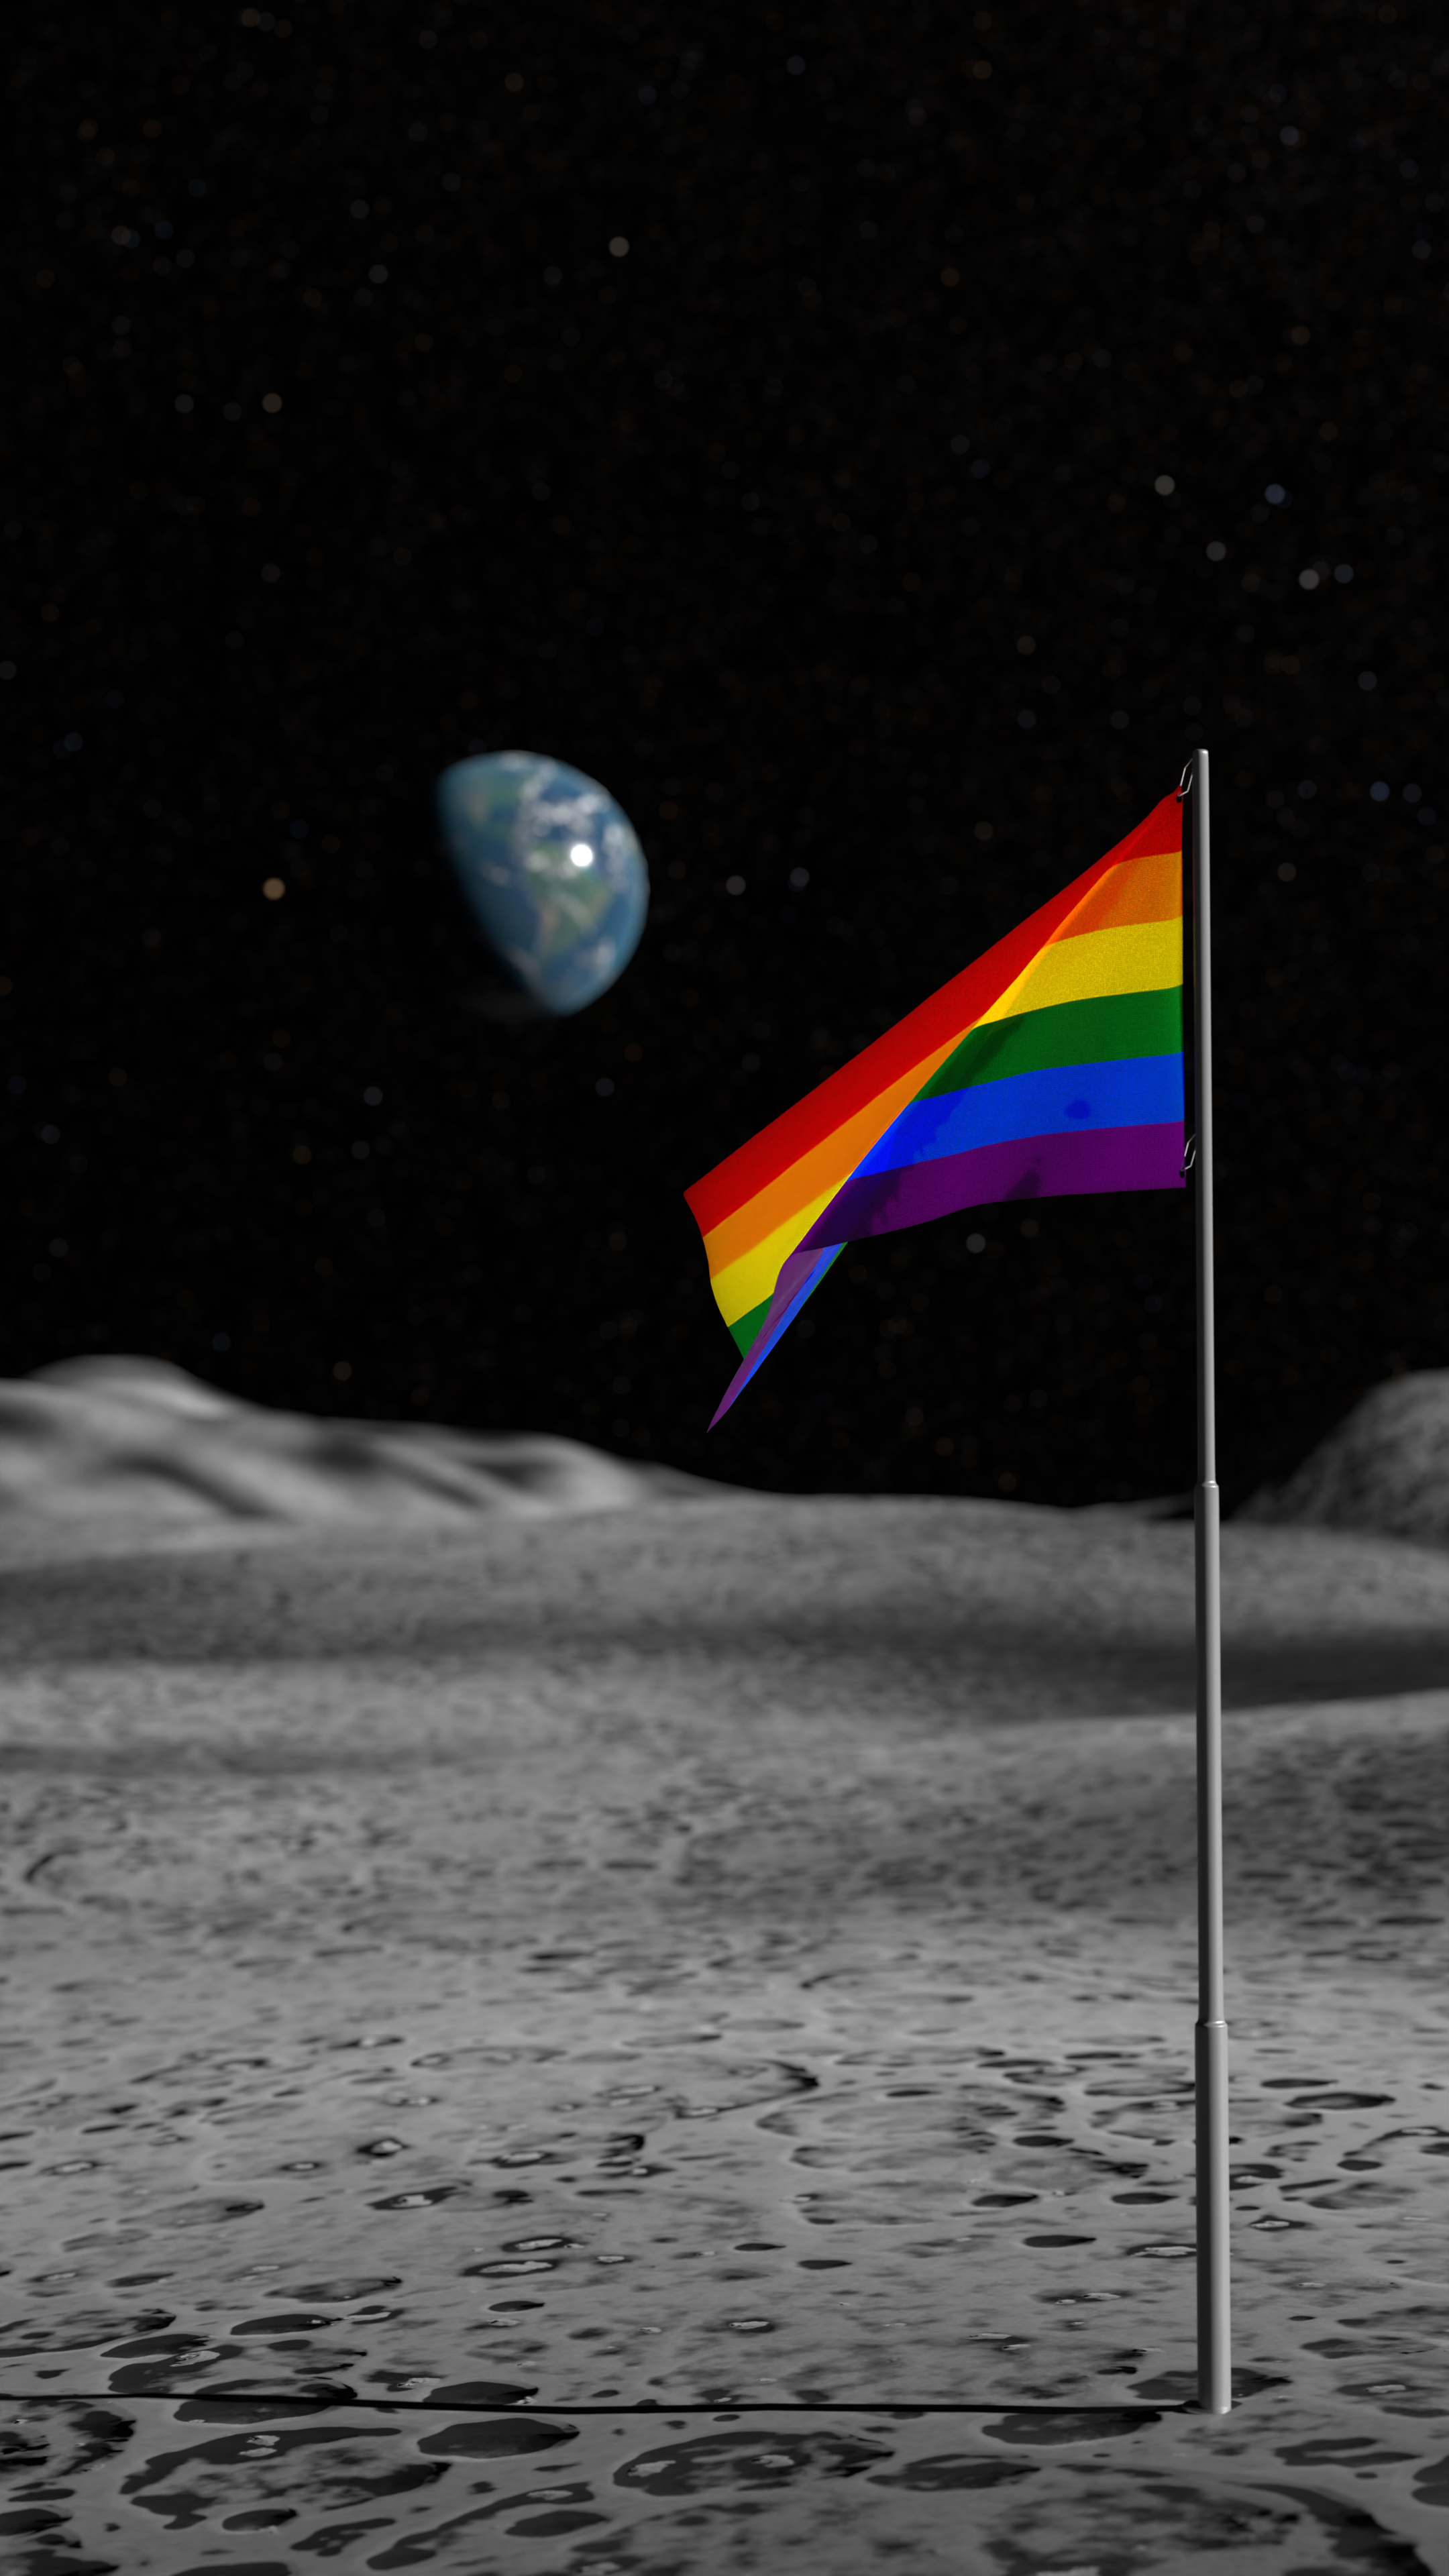 Moon with Flags preview image 2